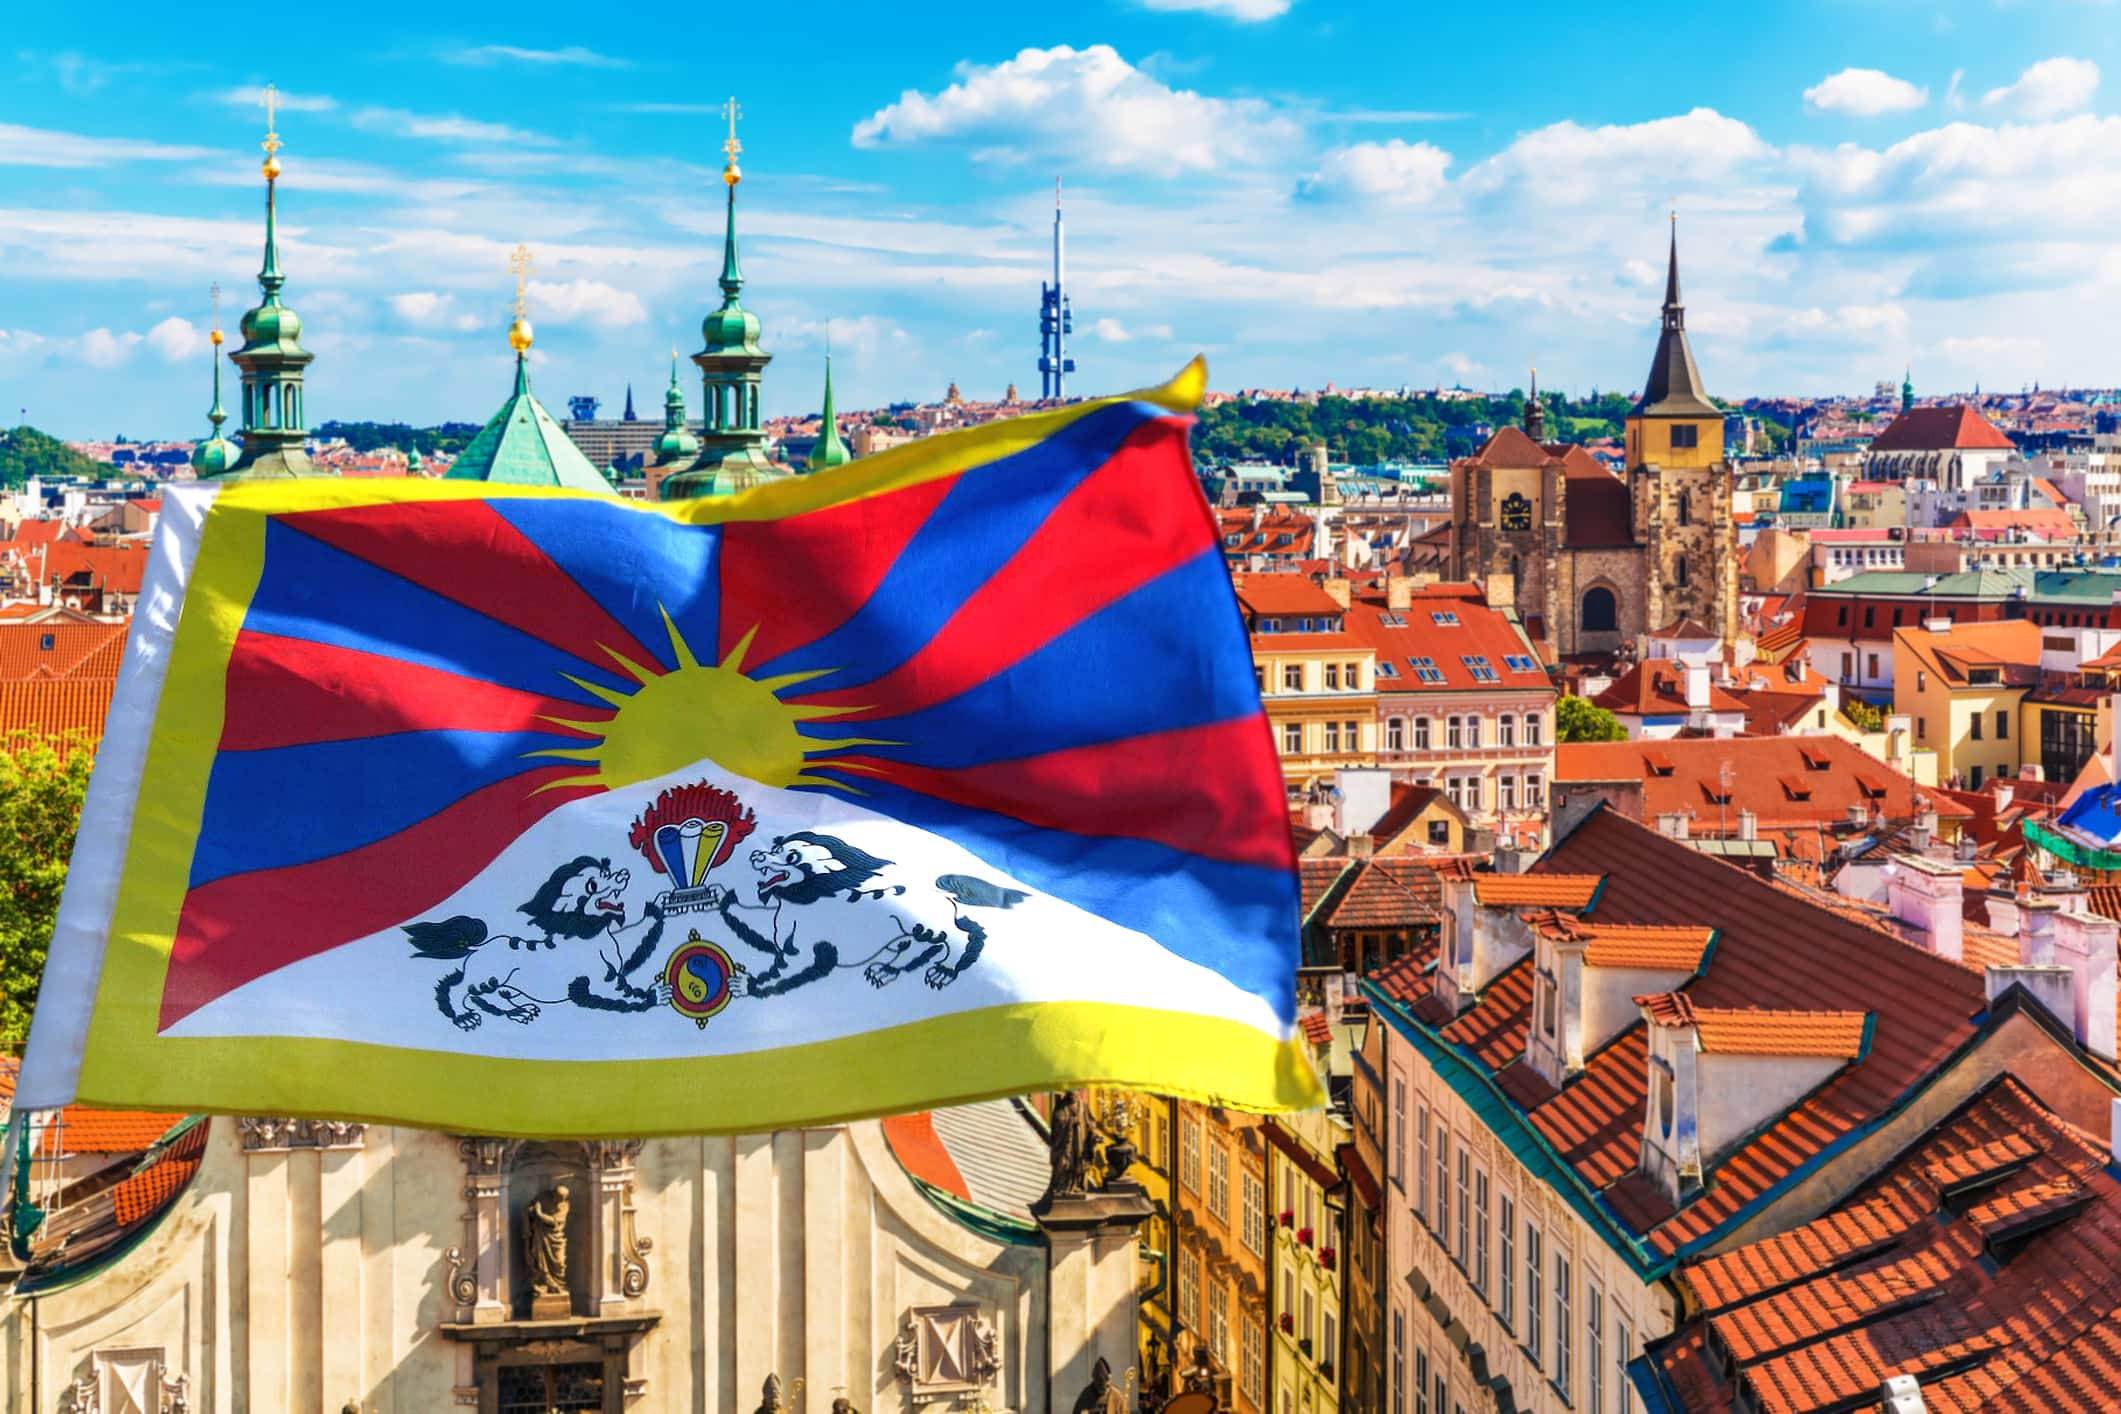 Prague to once again fly a Tibetan flag at City Hall